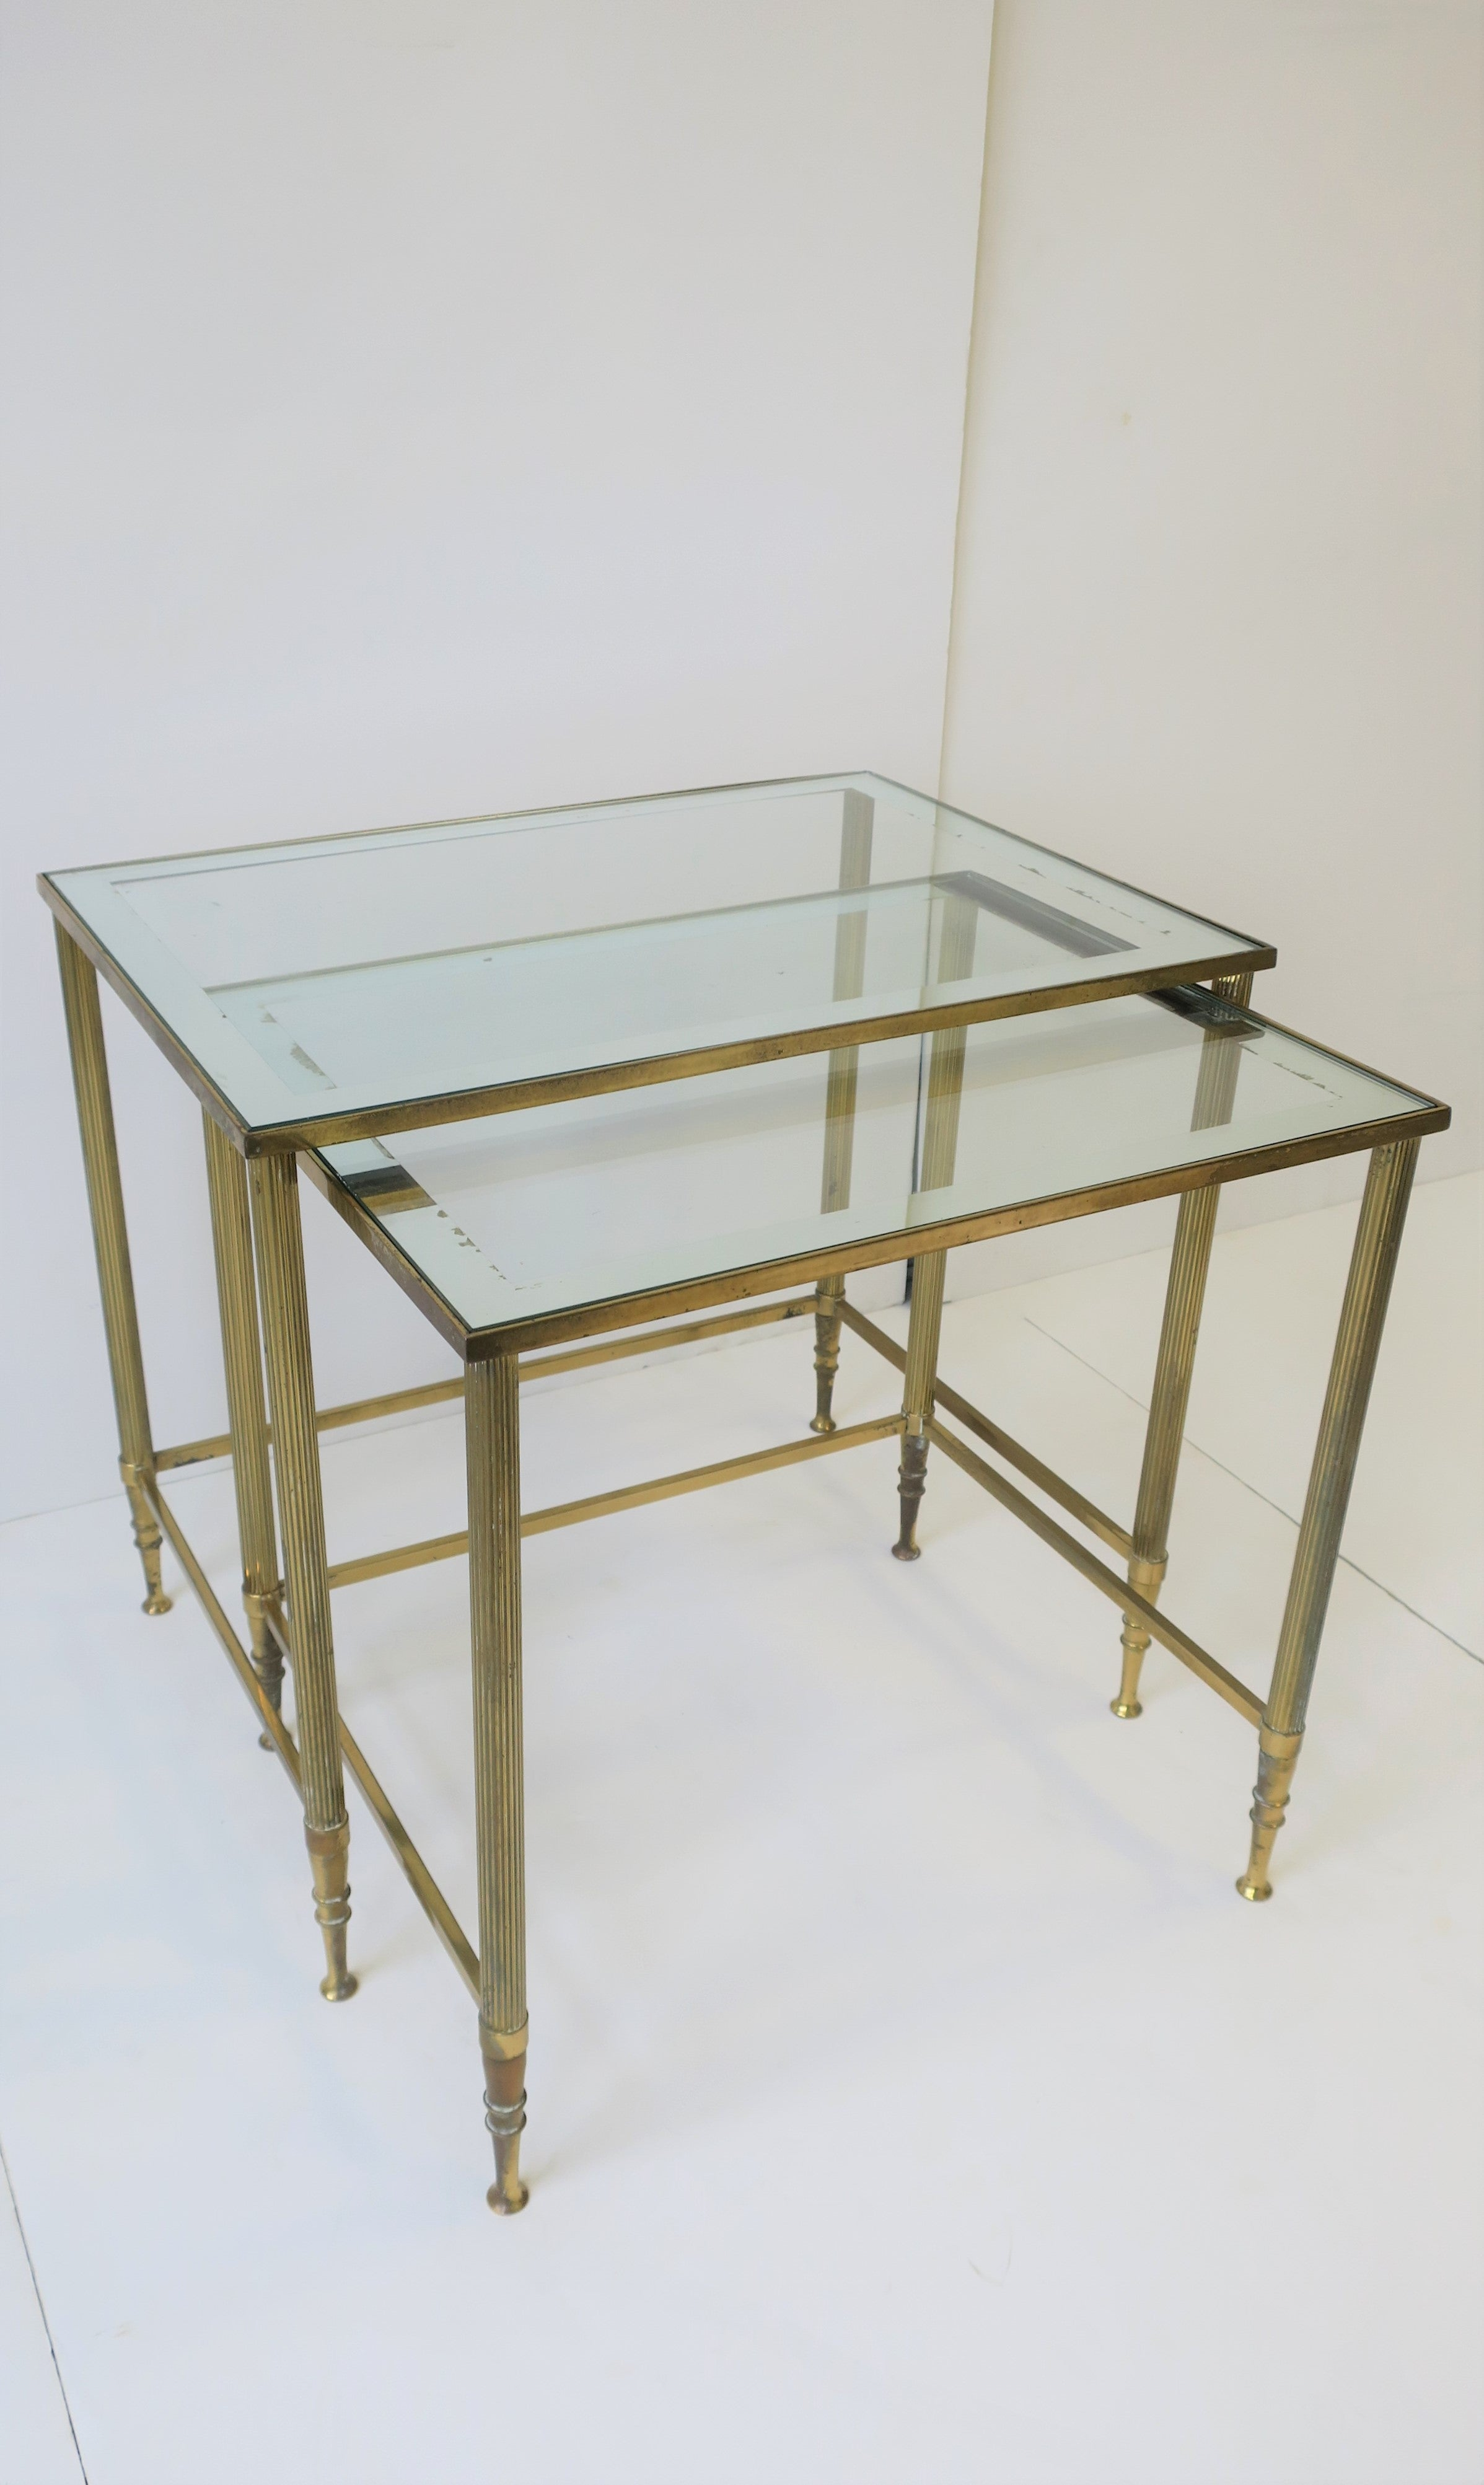 Glass Nesting Tables Midcentury Italian Brass And Glass Nesting Tables